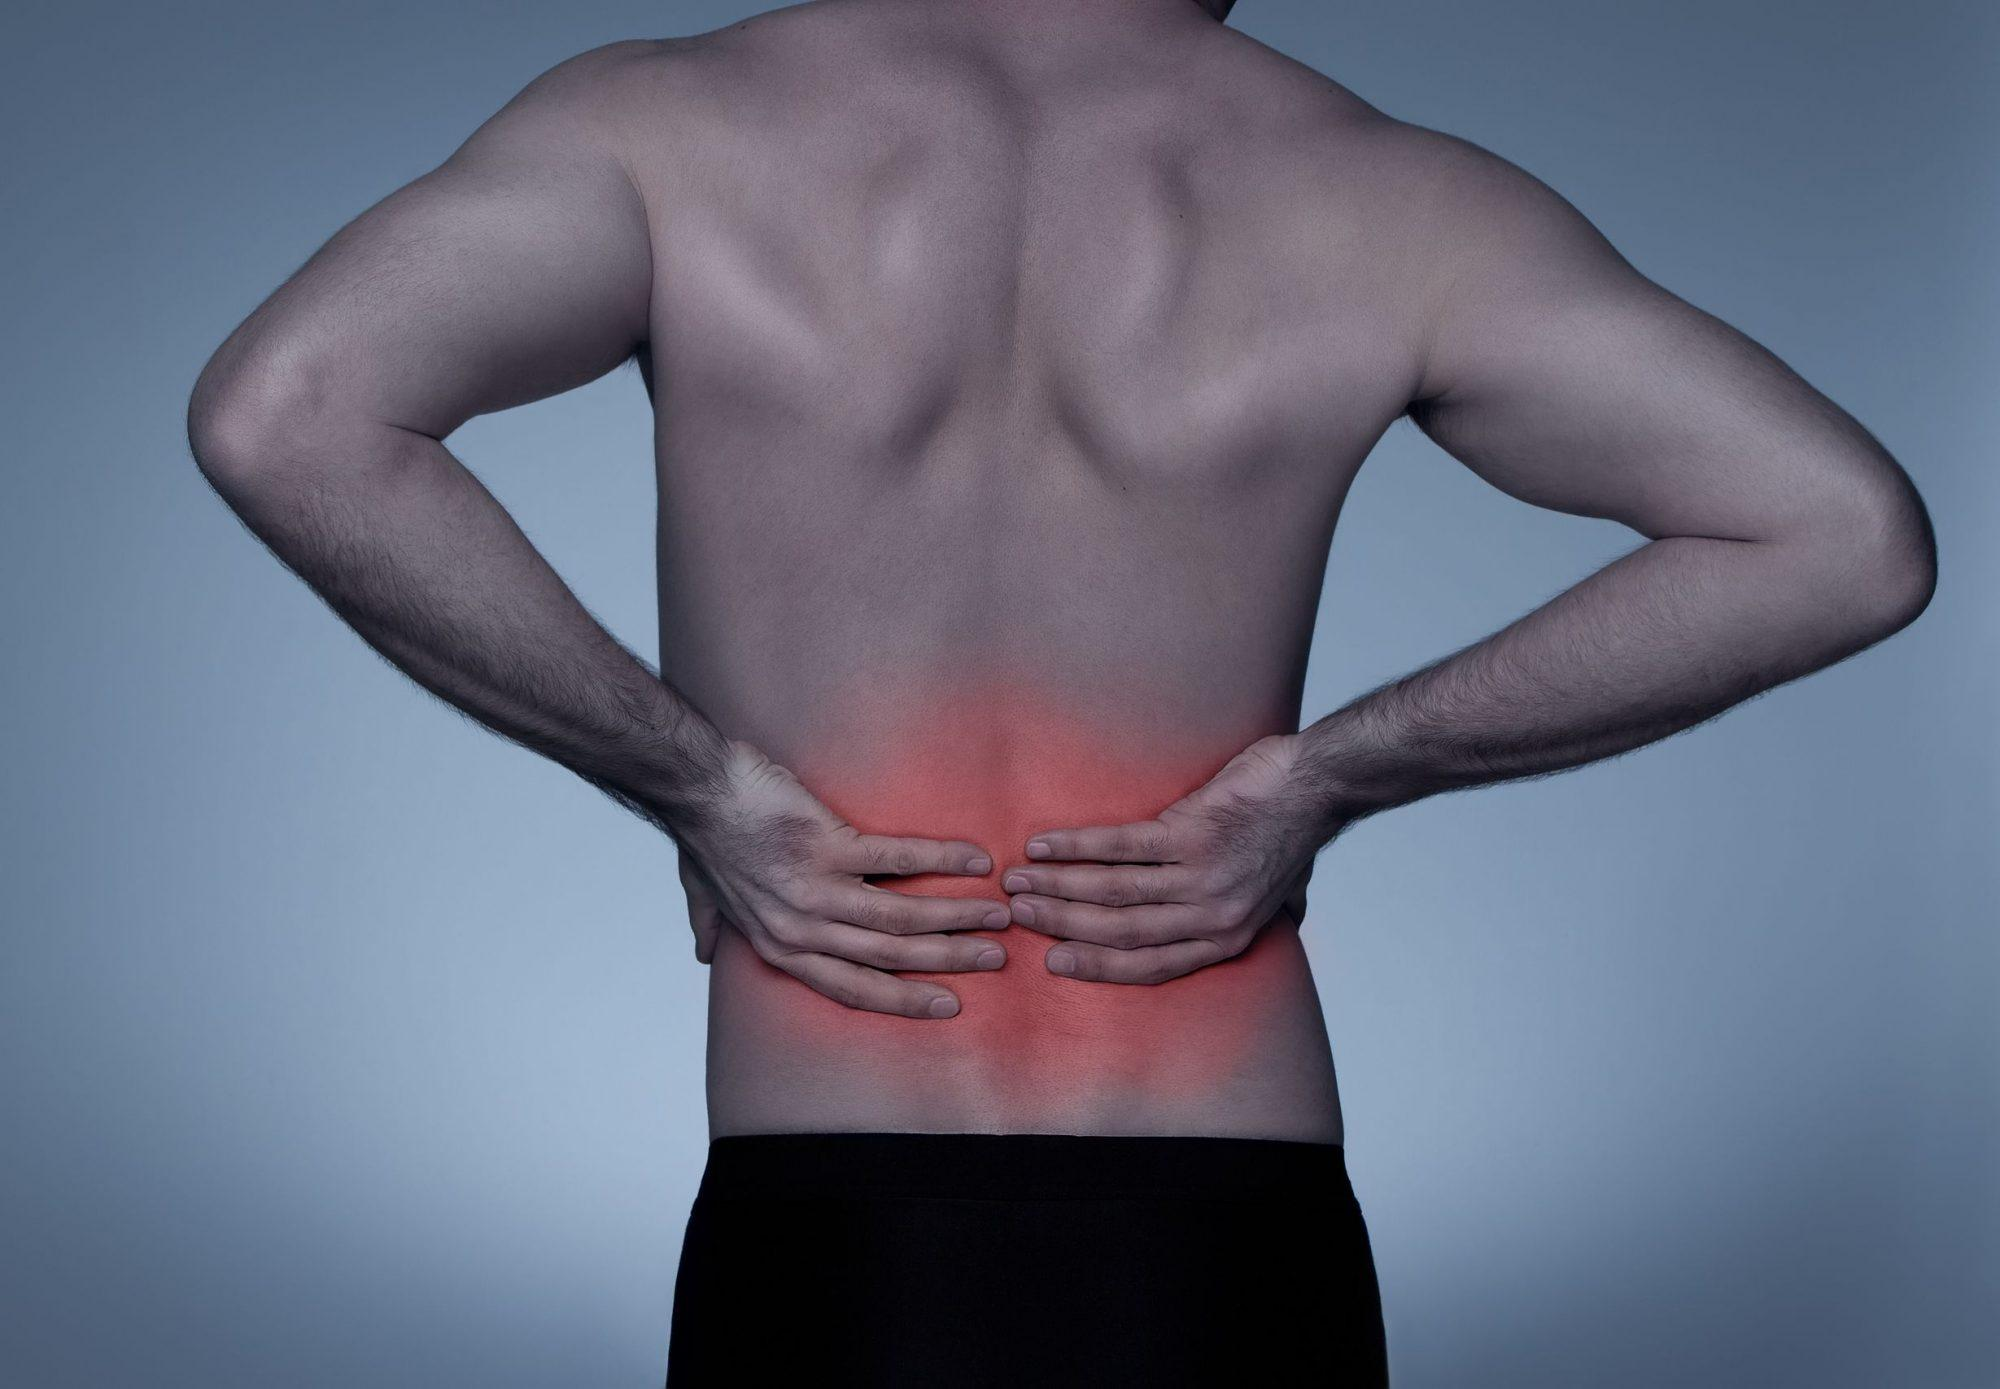 80% of Americans Experience Back Pain, But 100% of PTs Know How to Prevent It!